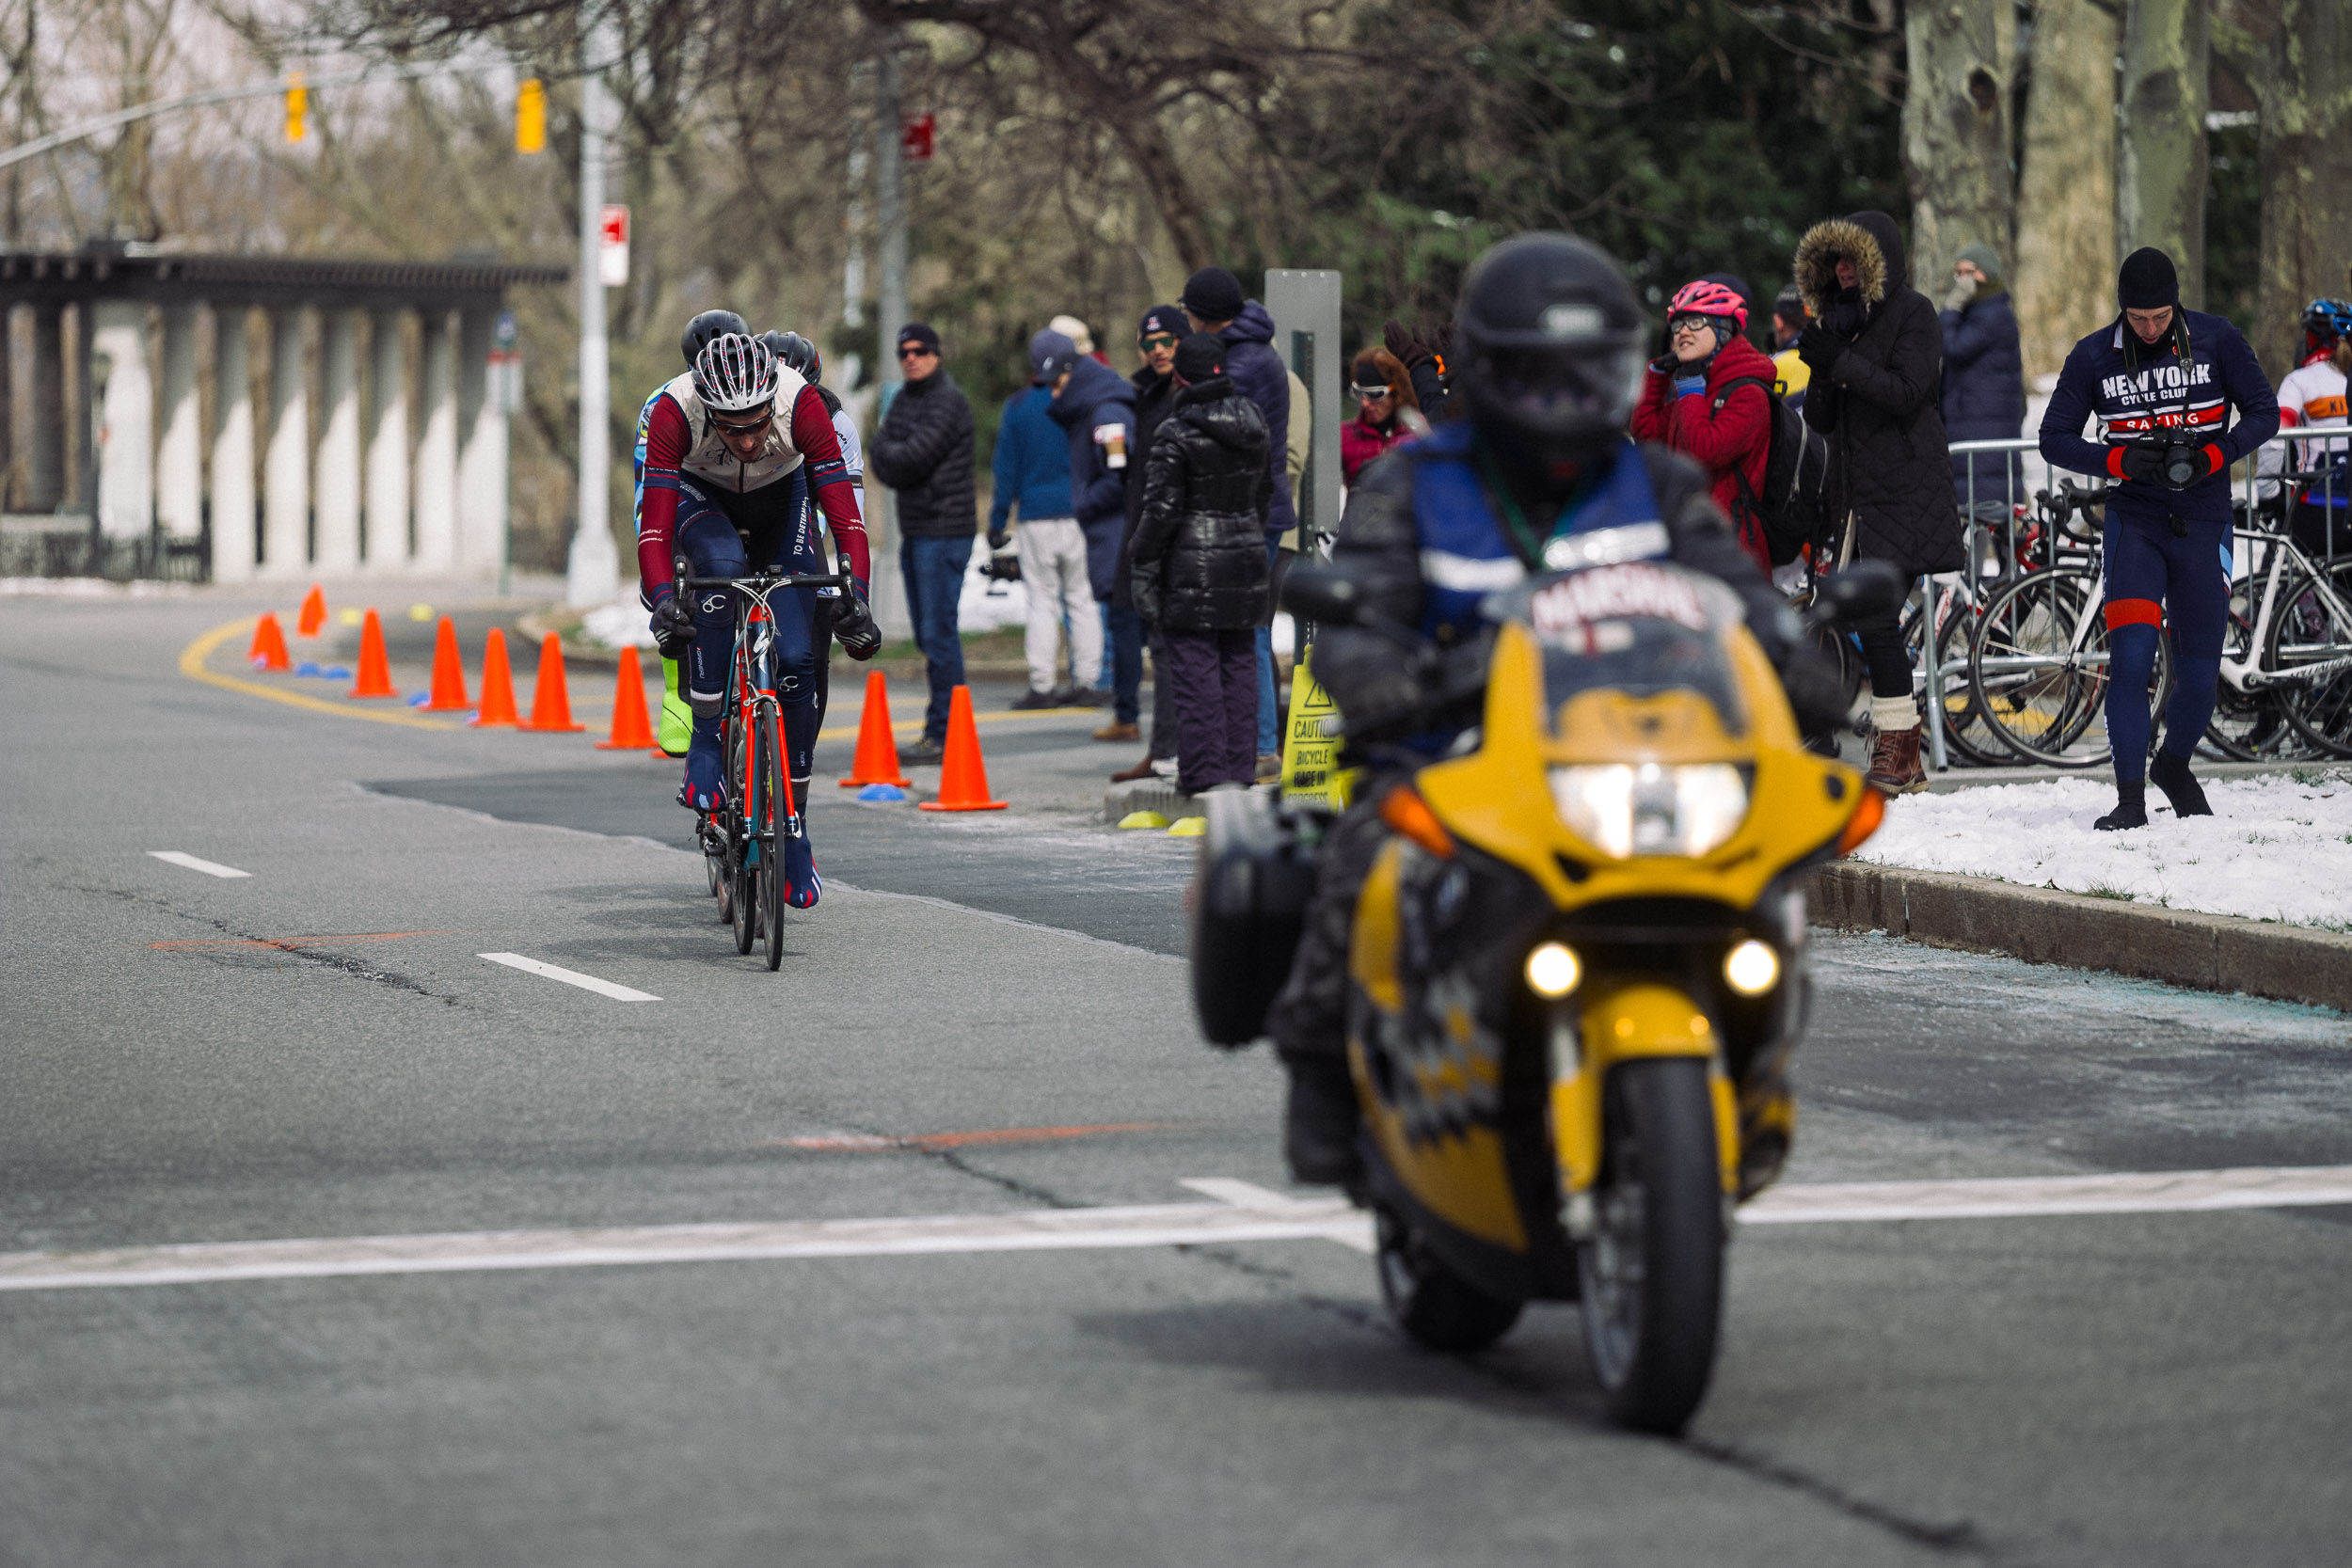 One of our moto officials in action at the Grant's Tomb Criterium, via our 2017 Grant's Tomb Criterium Race Report